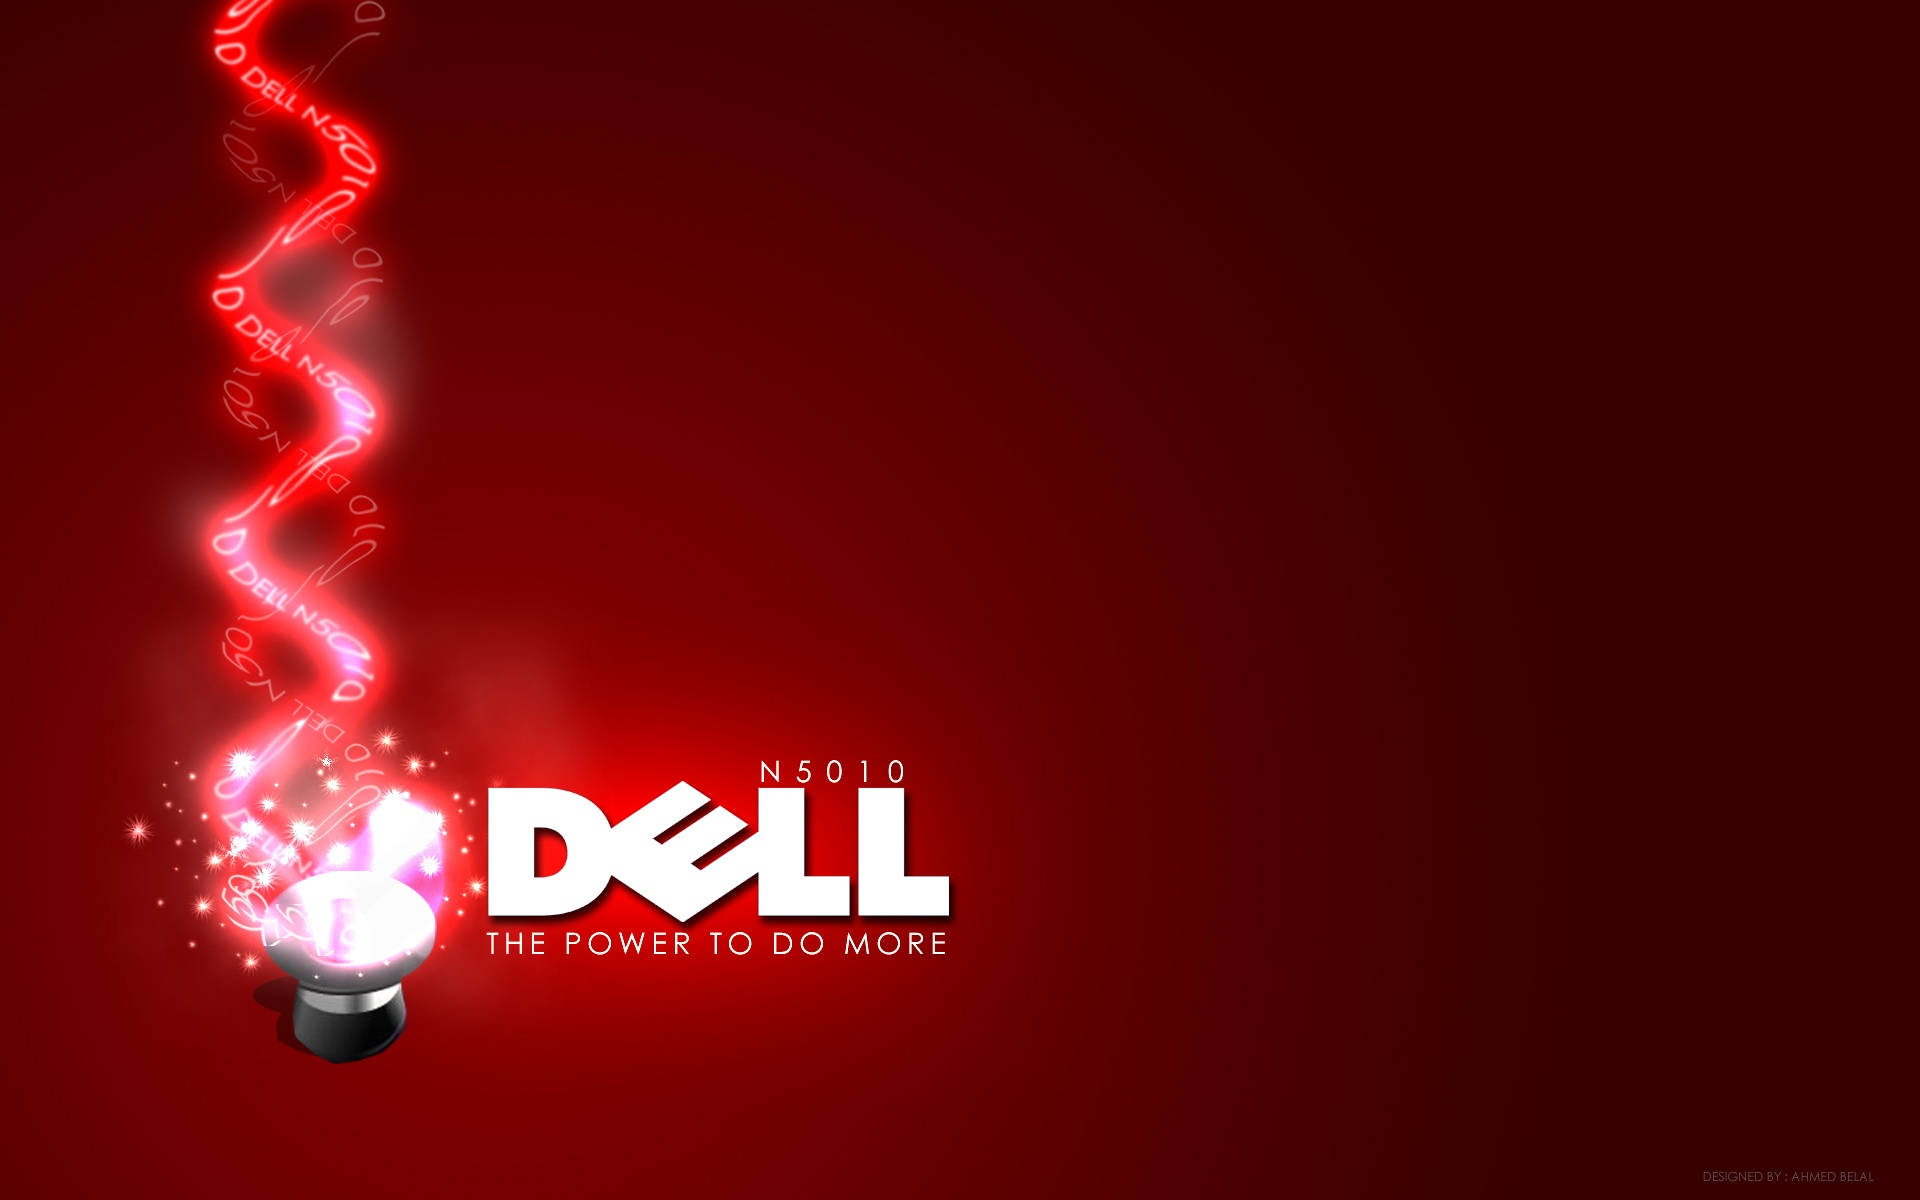 Dell Gaming Wallpaper 4k Fonds D Ecran Hd Pour Ordinateur Portable Dell 1280x800 Wallpapertip